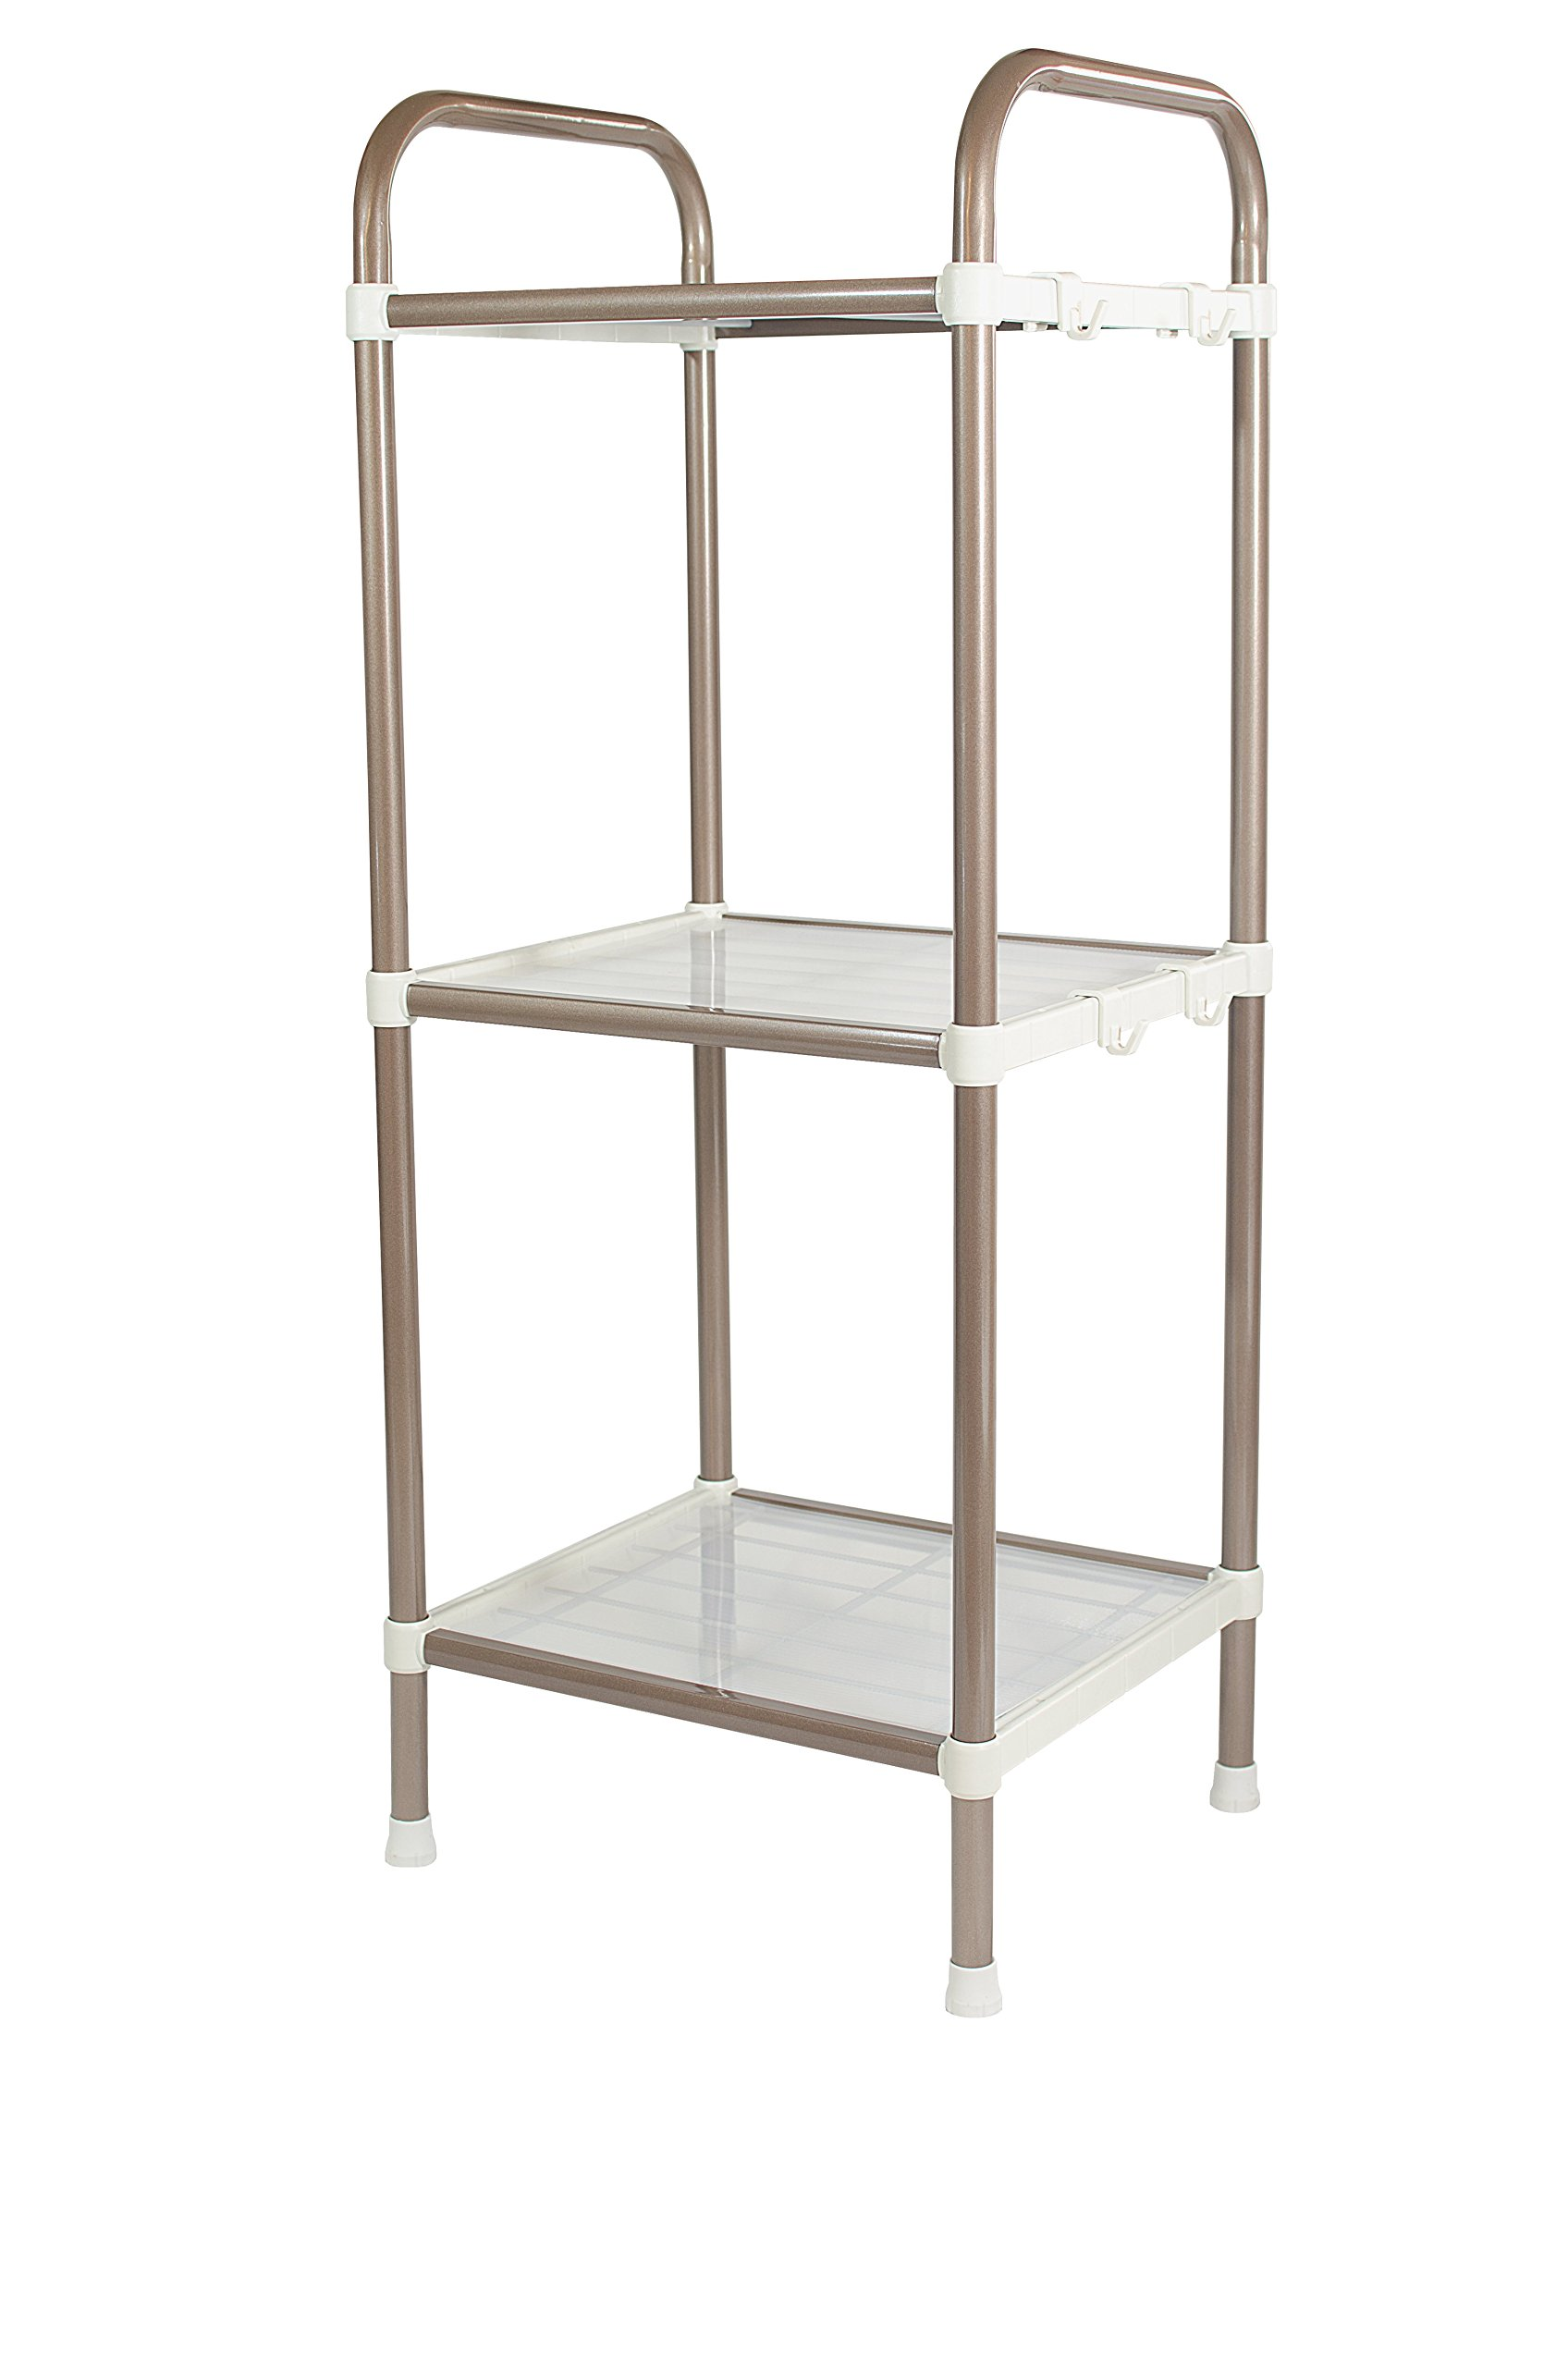 Bathroom Shelf - 3 Tier Shelf Organizer | Space Saving Shelf for Closets, Entryways, Doorways, Mudrooms, Garages & Home Storage | Expandable & Stackable w Other Shelves | Perfect for Organization - ✅ ORGANIZE AND CLEAR YOUR SPACE: If you have limited space in your house or apartment and find yourself stumbling over and searching through all of those household items, then our standing shelf organizer is exactly what you need. Clear out your living space and breathe a sigh of relief as your every organizational need is fully met. ✅ EXTRA EASY TO ASSEMBLE: We've engineered this shelf unit for maximum ease of assembly at every step. Absolutely zero tools required - simply follow the easy to read instructions and enjoy your space-saving new piece of functional furniture in seconds! ✅ SUPER STURDY & DURABLE: Don't settle for a tiered storage rack built from flimsy plastic parts and weak connector materials that's just going to collapse when you need it most. Our short, compact 3-tier bathroom storage rack is made from reinforced steel in a stylish and modern silver coating that looks amazing and ideal for kitchen organization and storage, bathroom shelving, office organization, or laundry or living room. 45 lb capacity. - shelves-cabinets, bathroom-fixtures-hardware, bathroom - 71f Gf7OGZL -